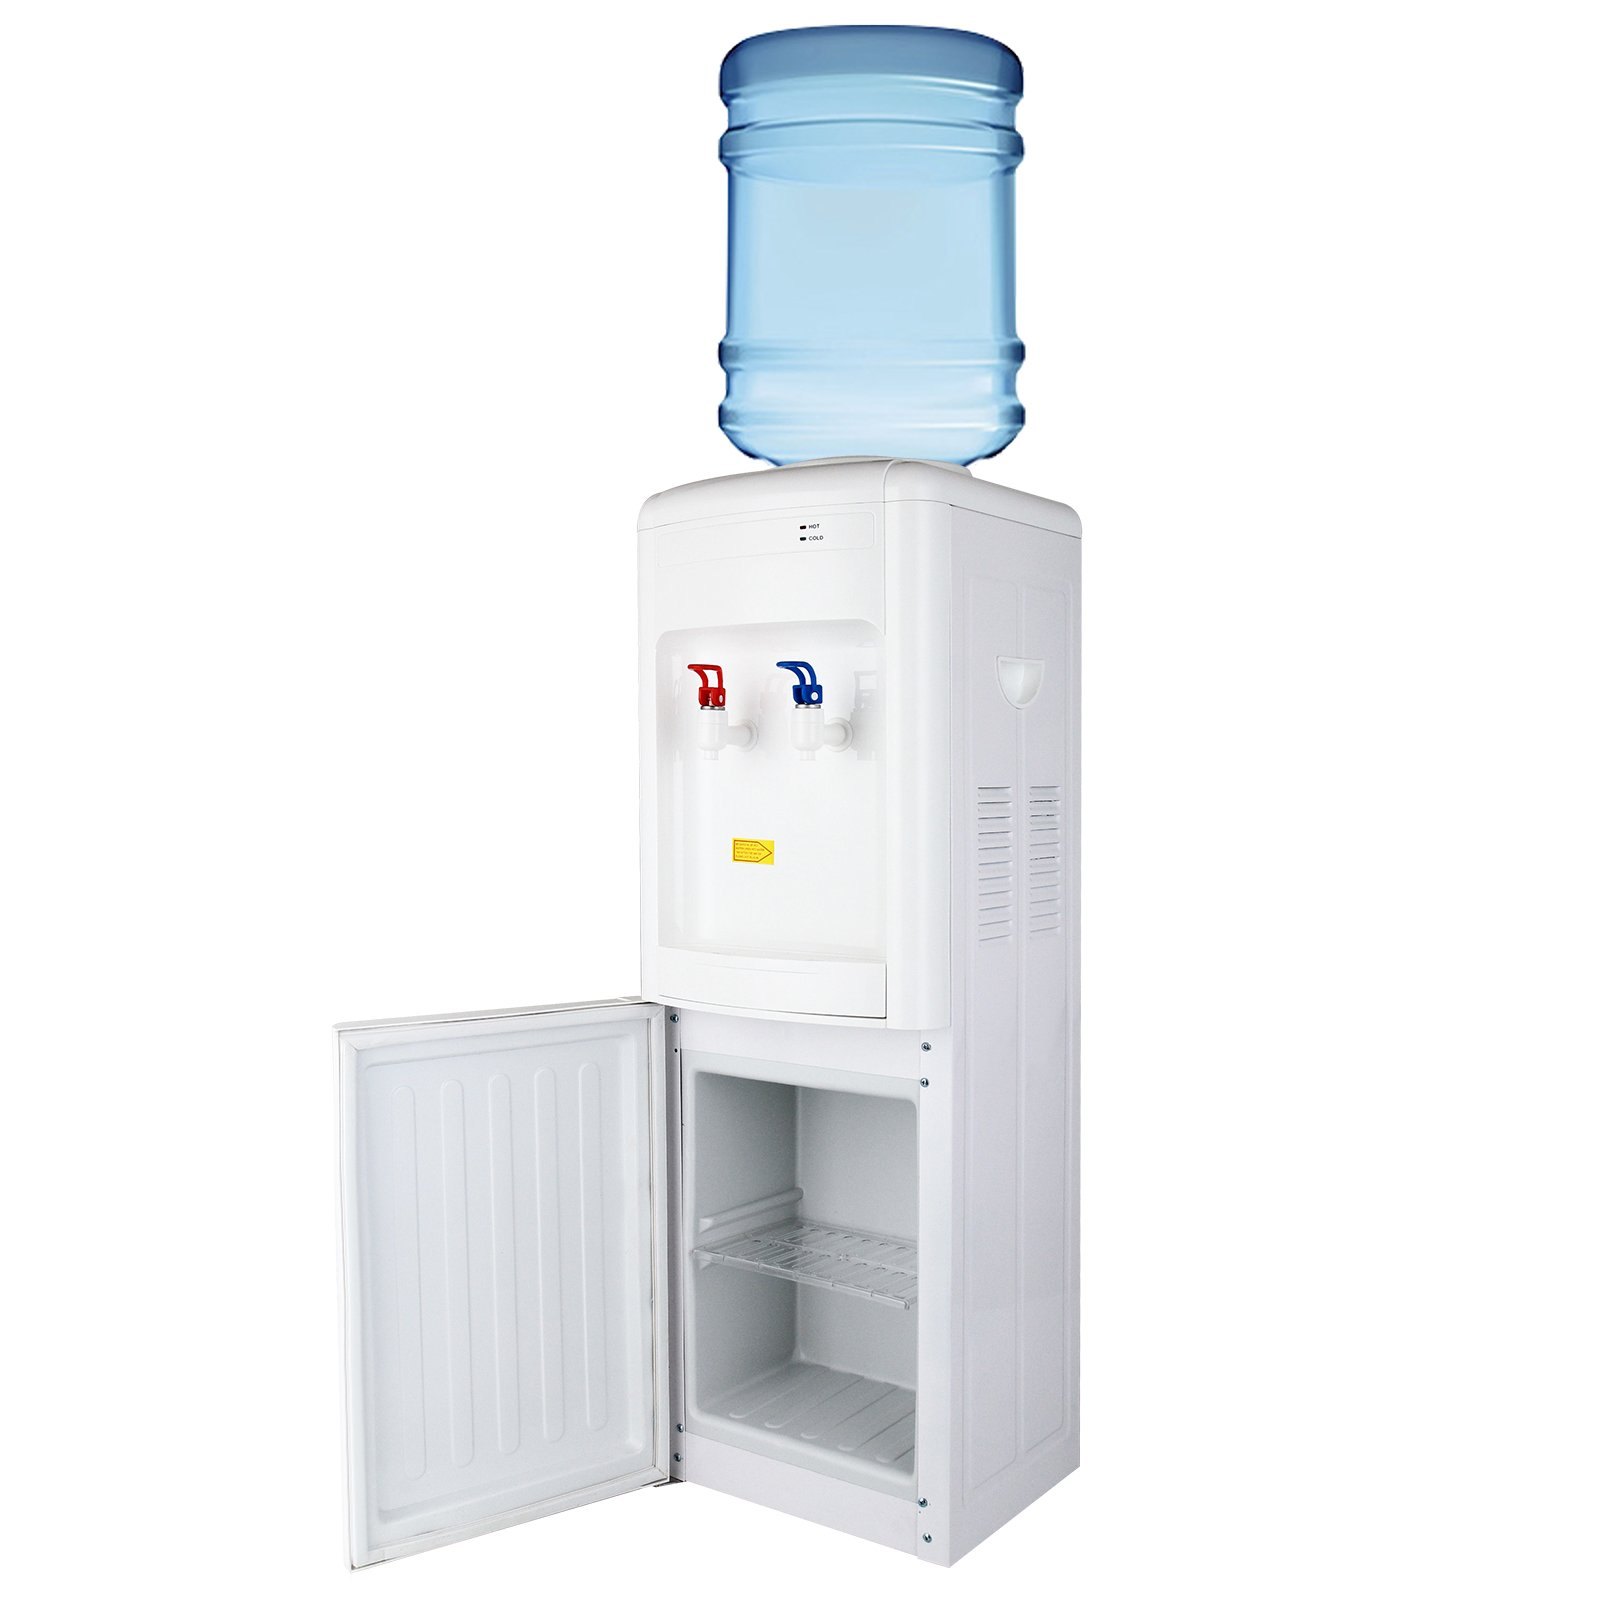 KUPPET 5 Gallon Water Cooler Dispenser-Top Loading Freestanding Water Dispenser with Storage Cabinet, Two Temperature Settings-Hot(85℃-95℃), Normal Temperature(10-15℃), WHITE (White)